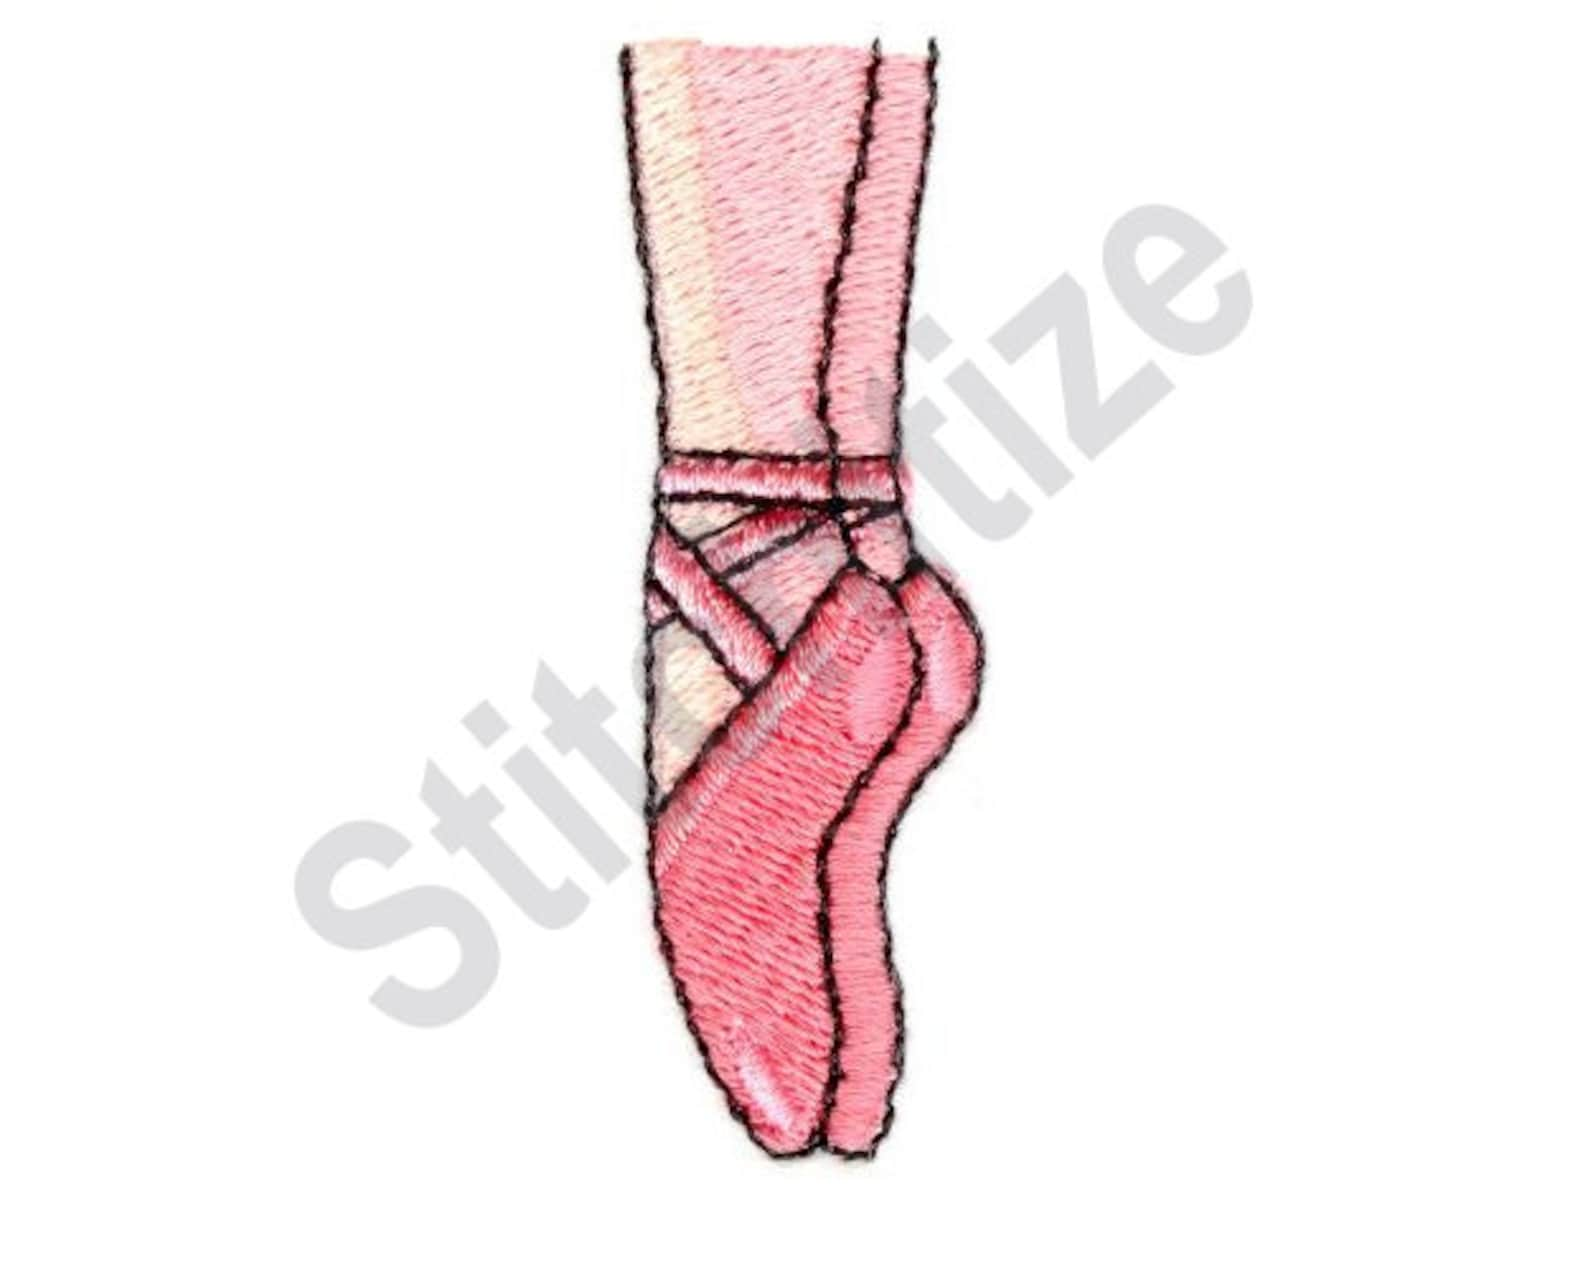 ballerina feet - machine embroidery design, ballet slippers, toe shoes, ballerina